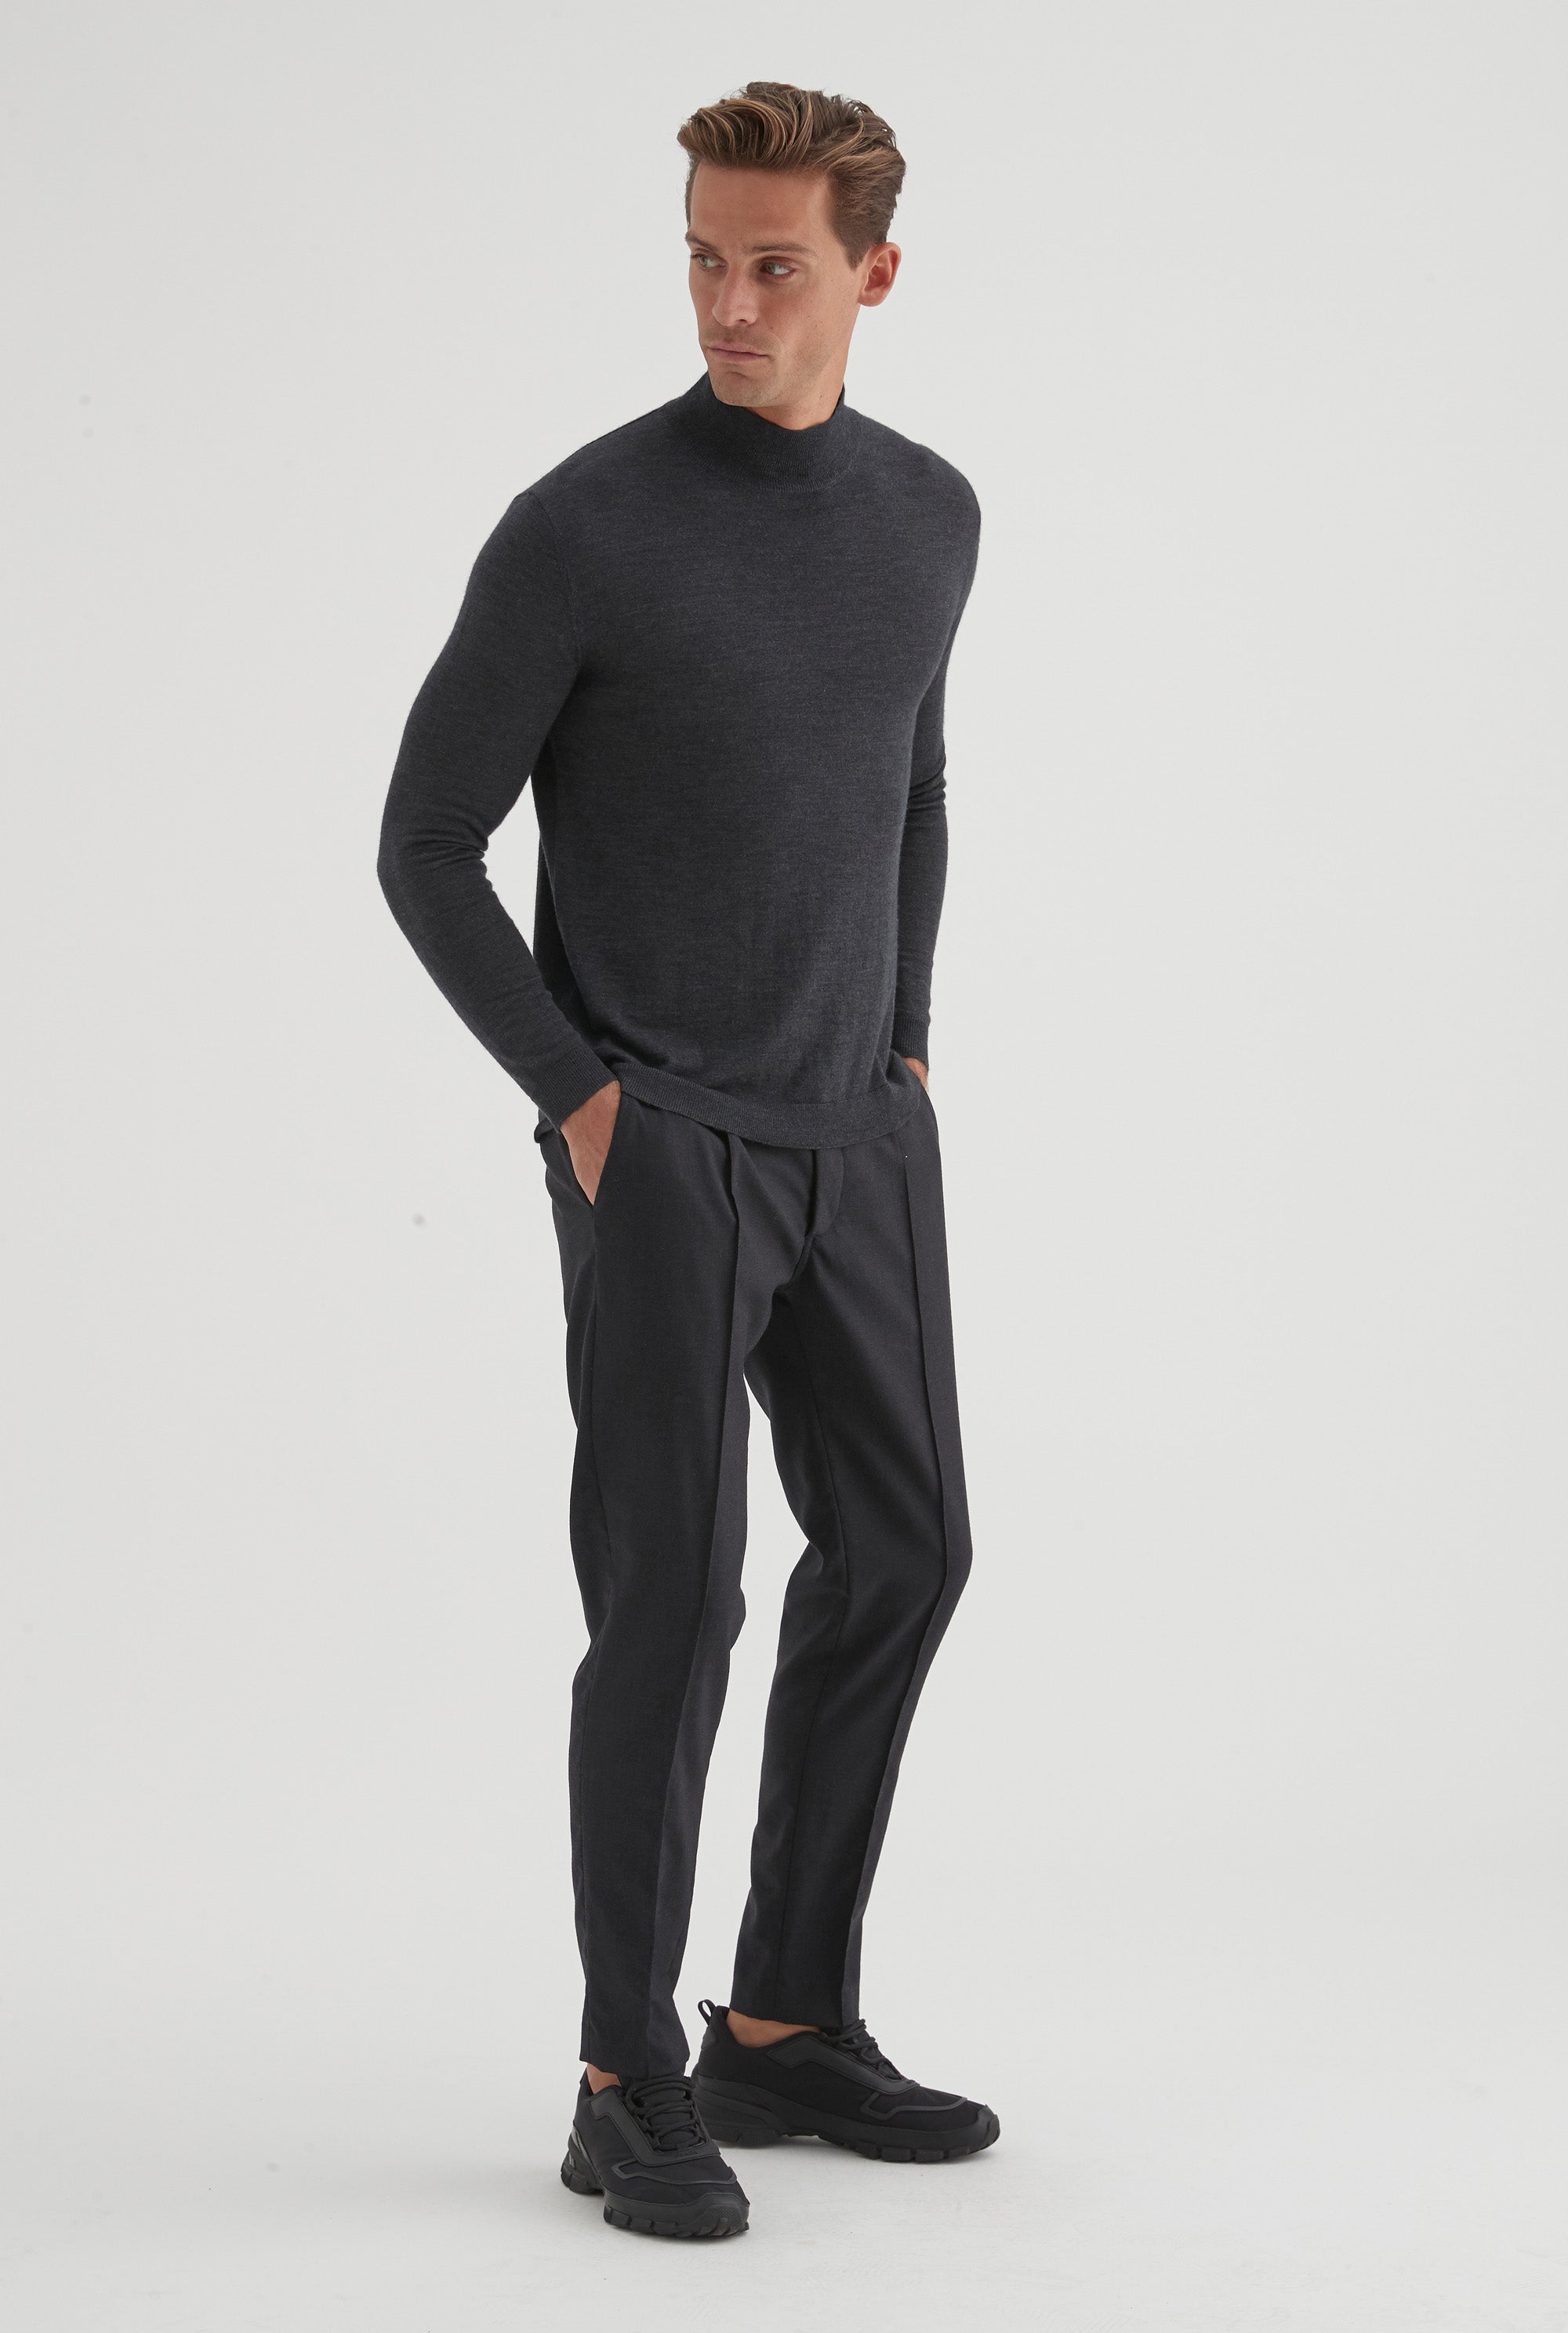 Merino Wool High Neck Knit - Dark Charcoal